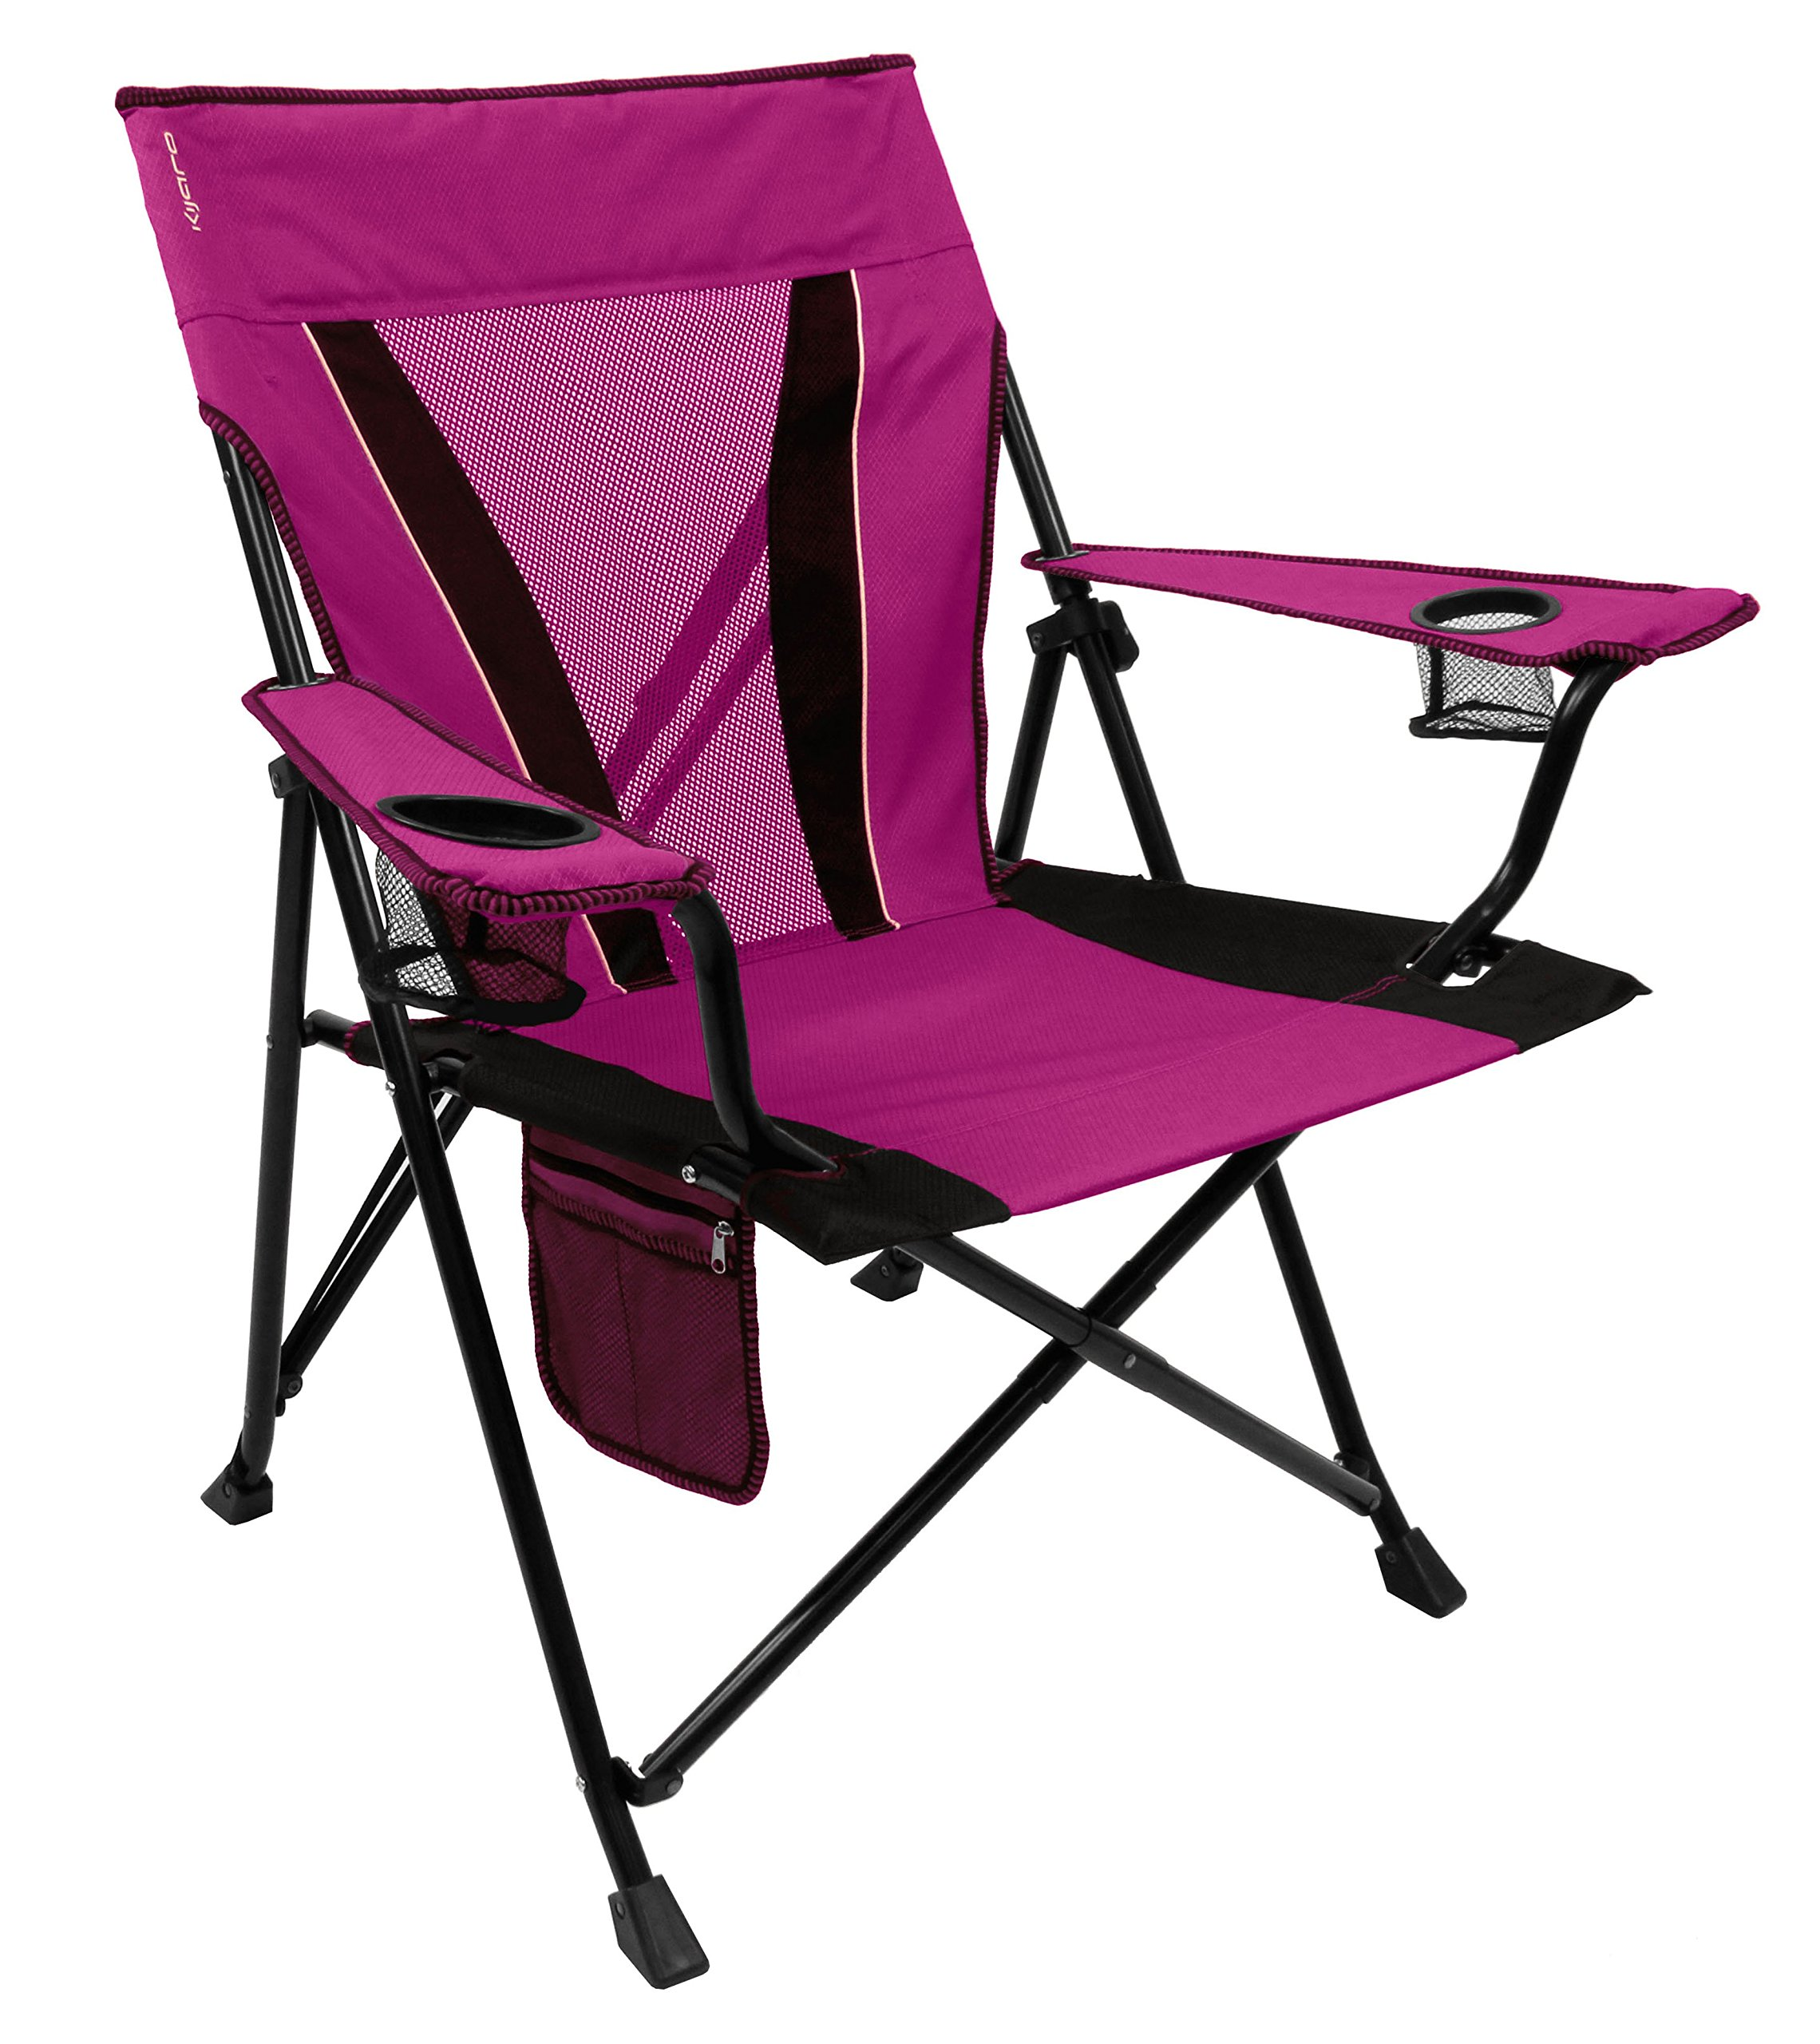 Kijaro XXL Dual Lock Portable Camping and Sports Chair by Kijaro